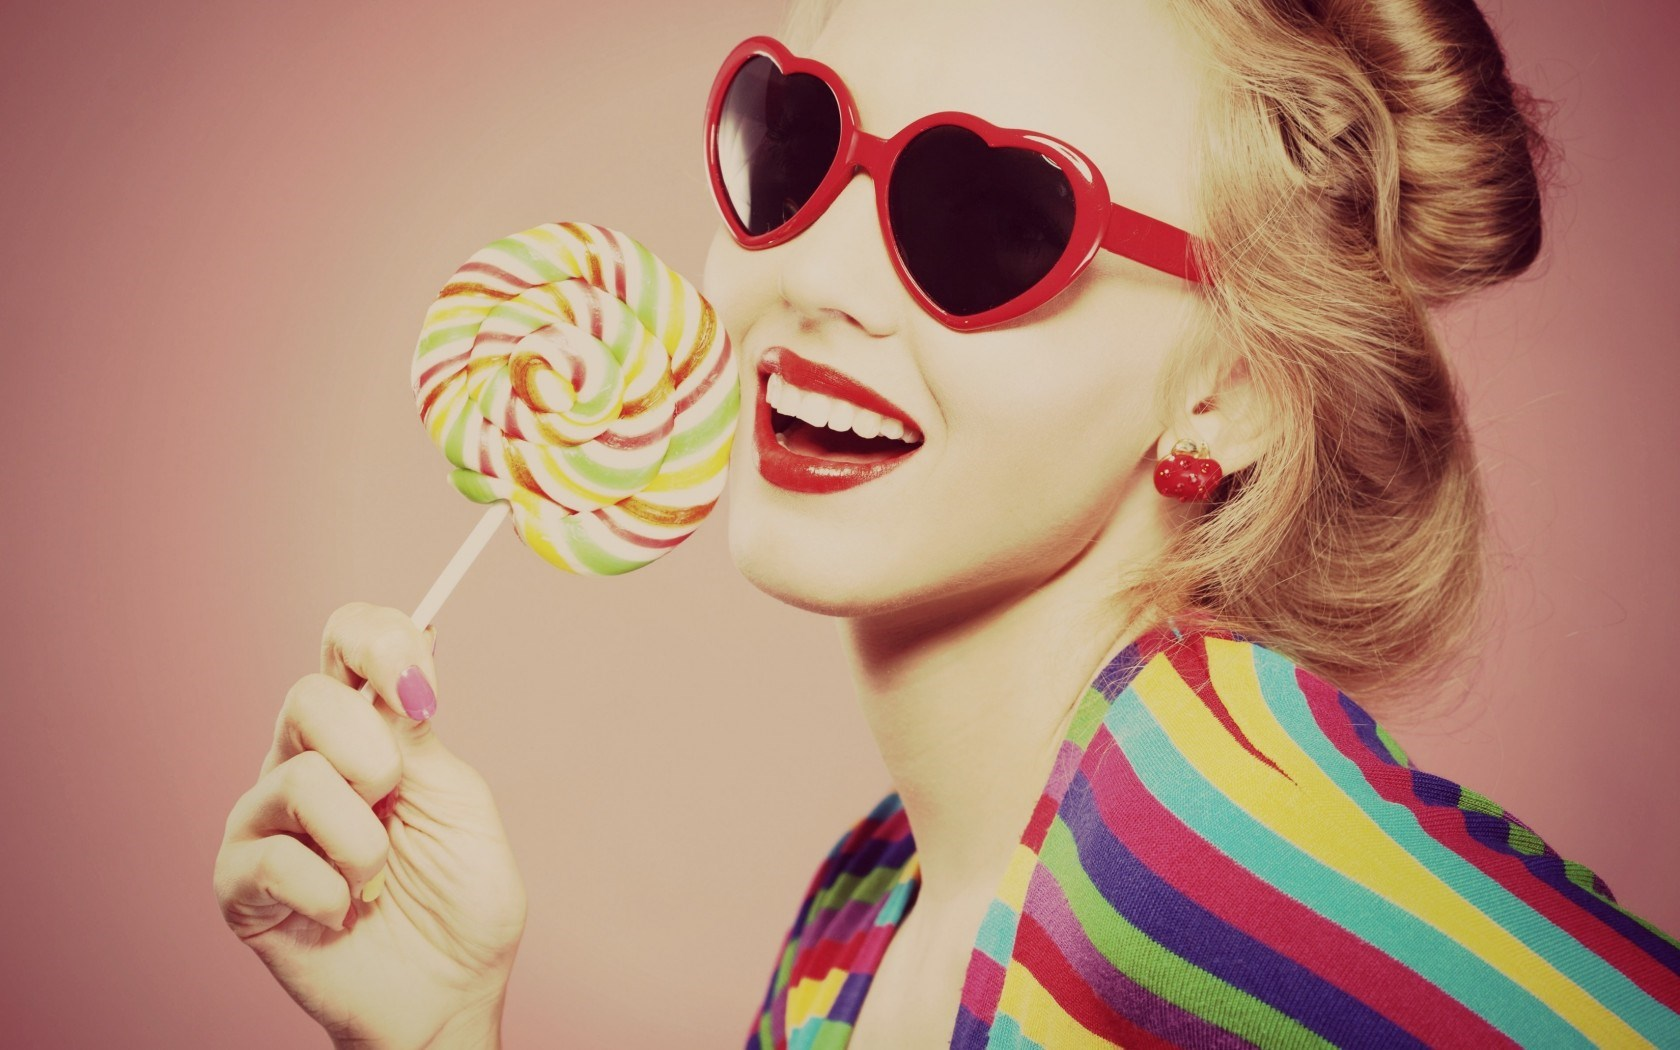 Mood Girl Smile Glasses Heart Candy Lollipop